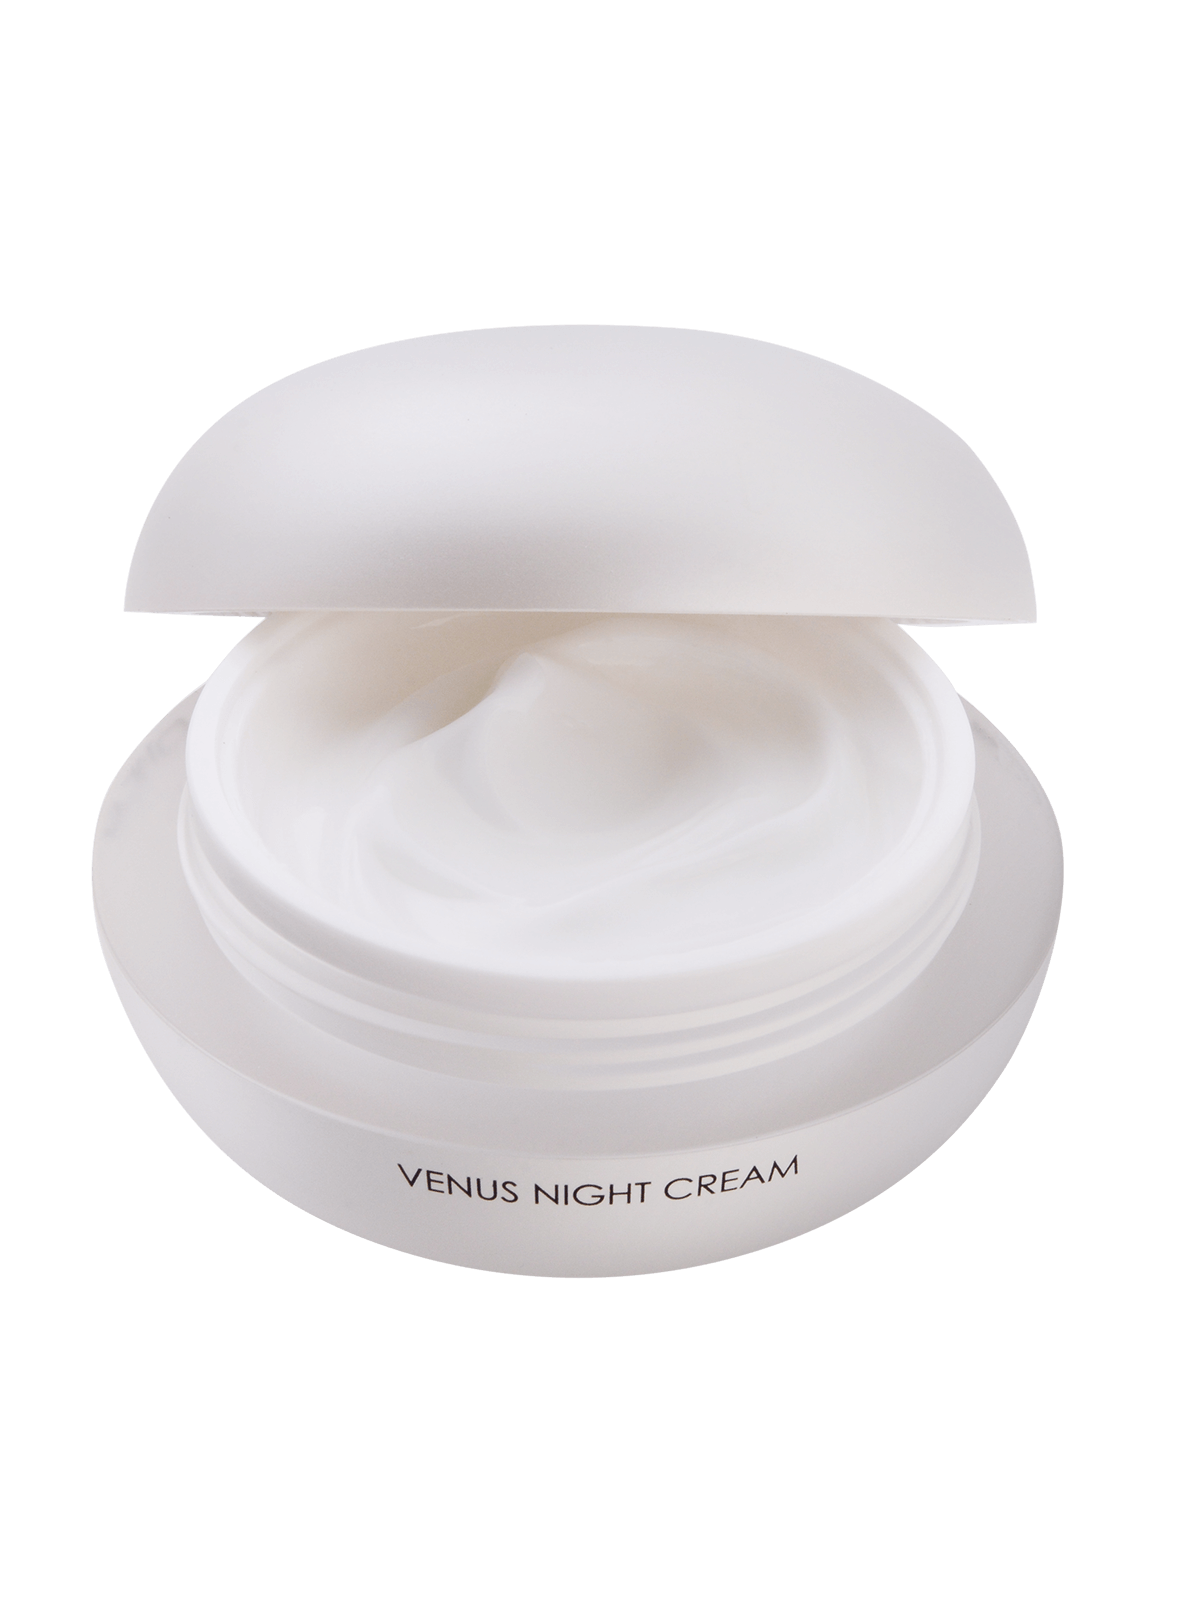 Celestolite Venus Night Cream